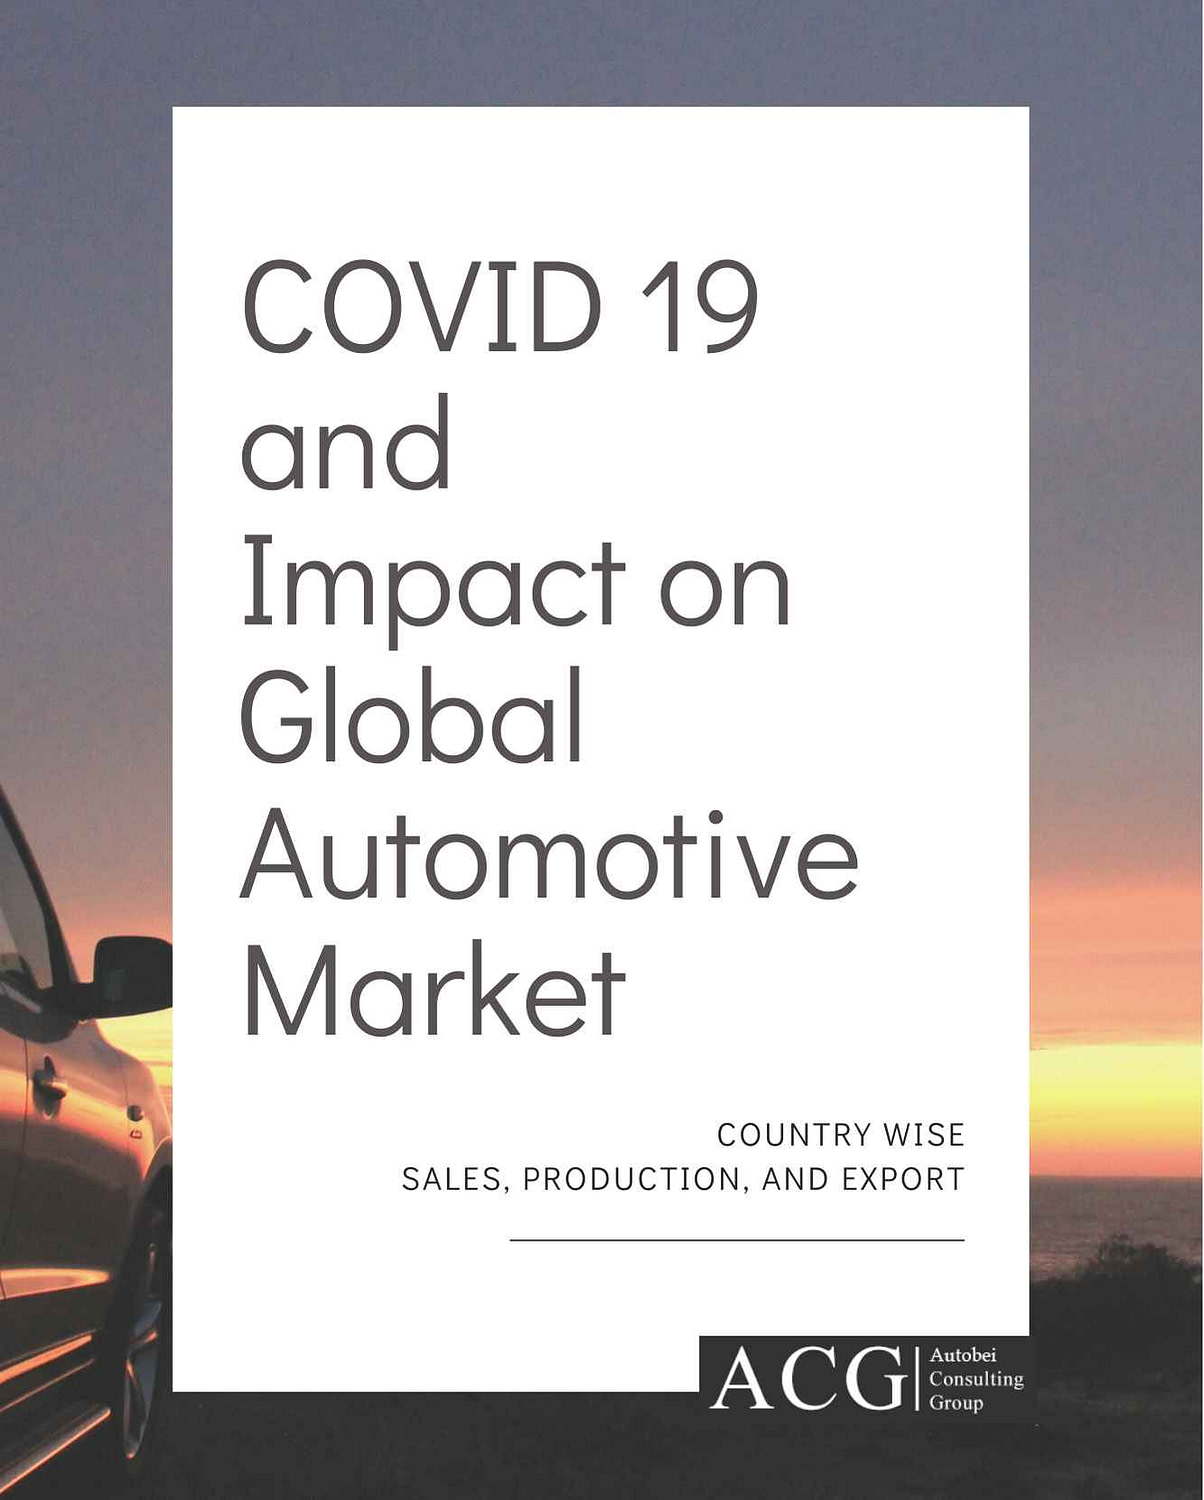 Corona's impact on the Global Automotive Sector